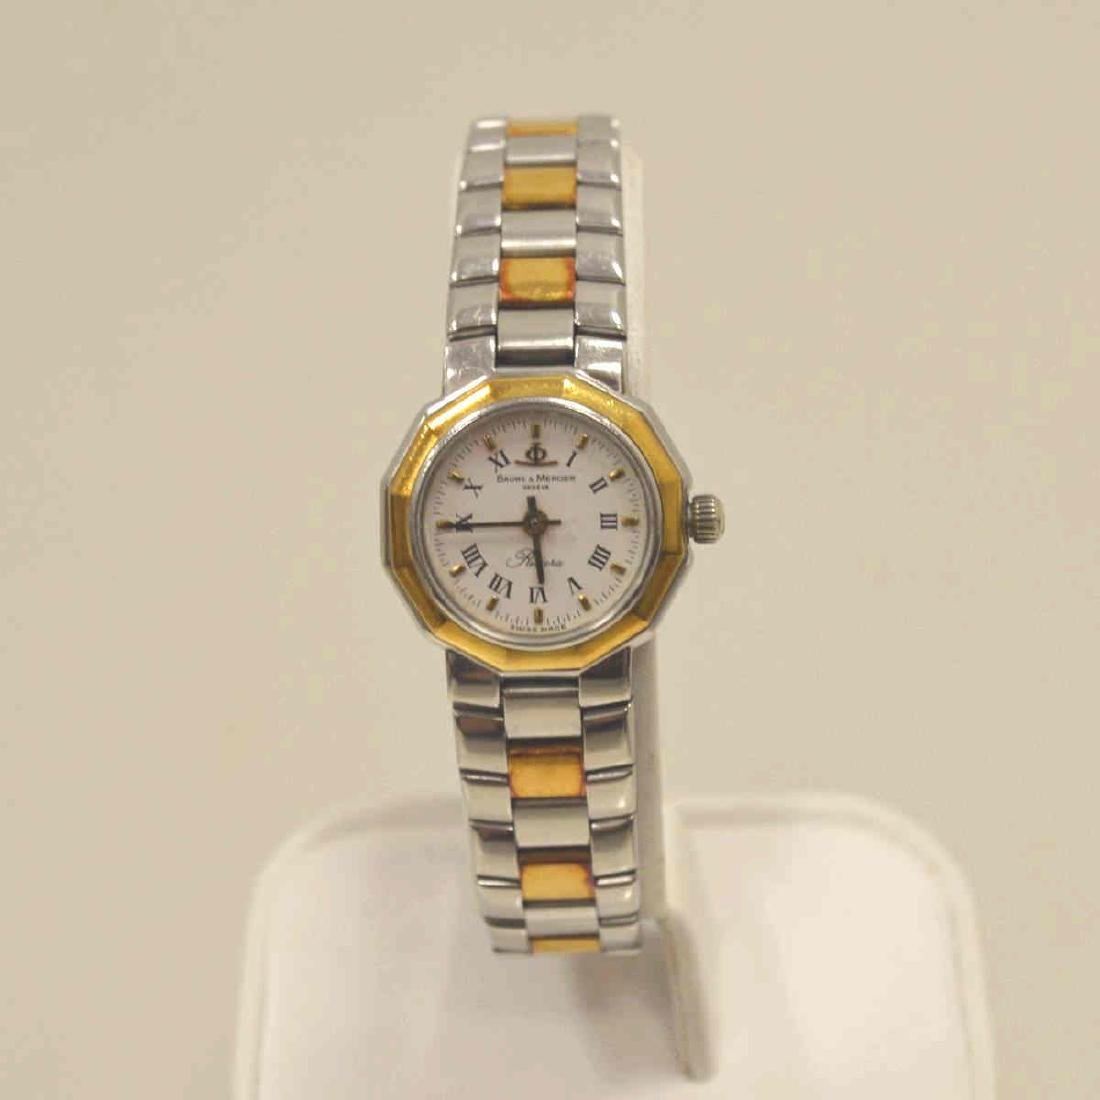 Ladies Two Tone Baume & Mercier Watch